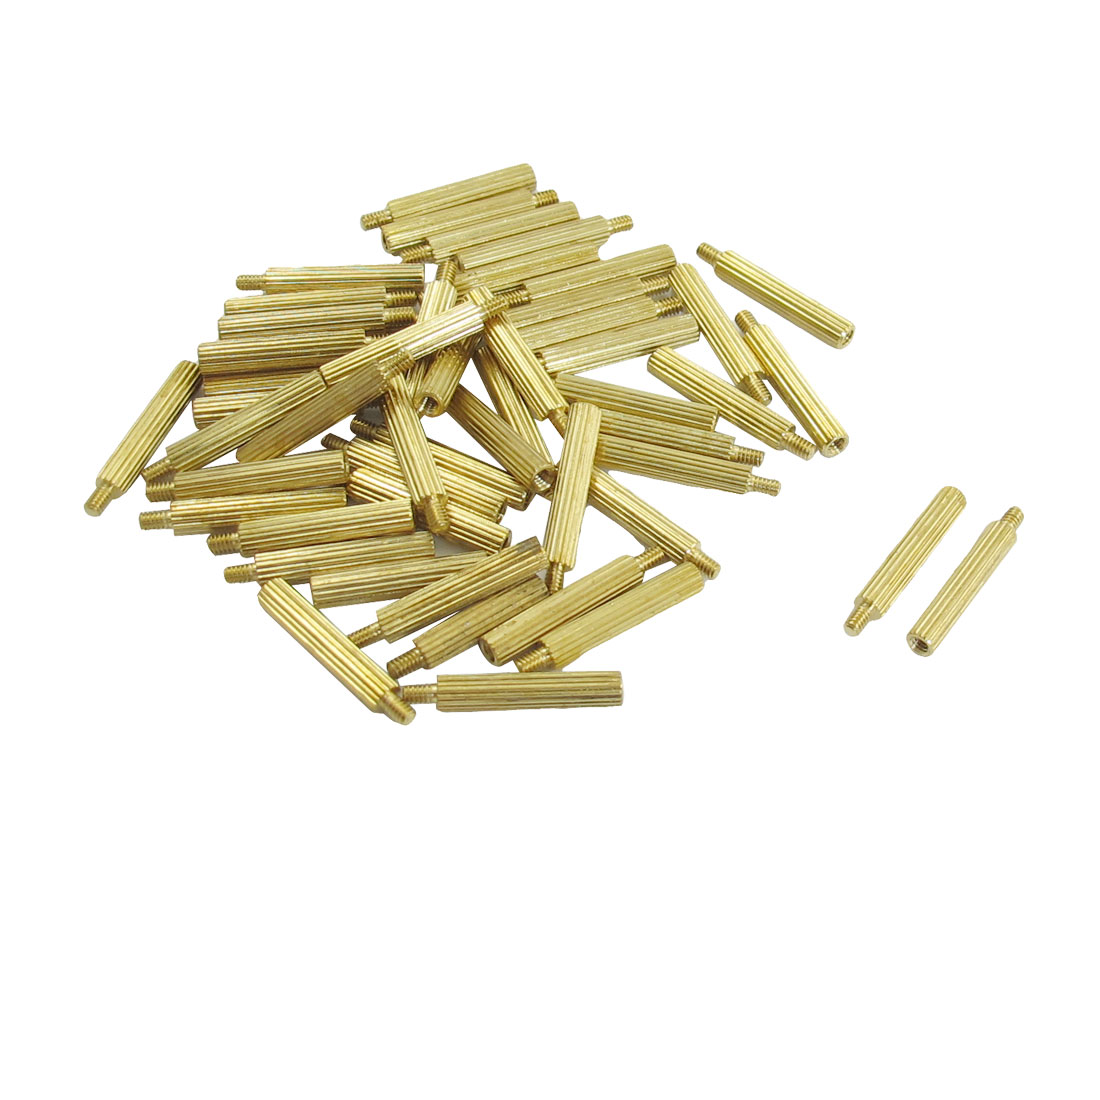 50 Pcs Male to Female Thread Brass Pillars Standoff Spacer M2x16mmx19mm